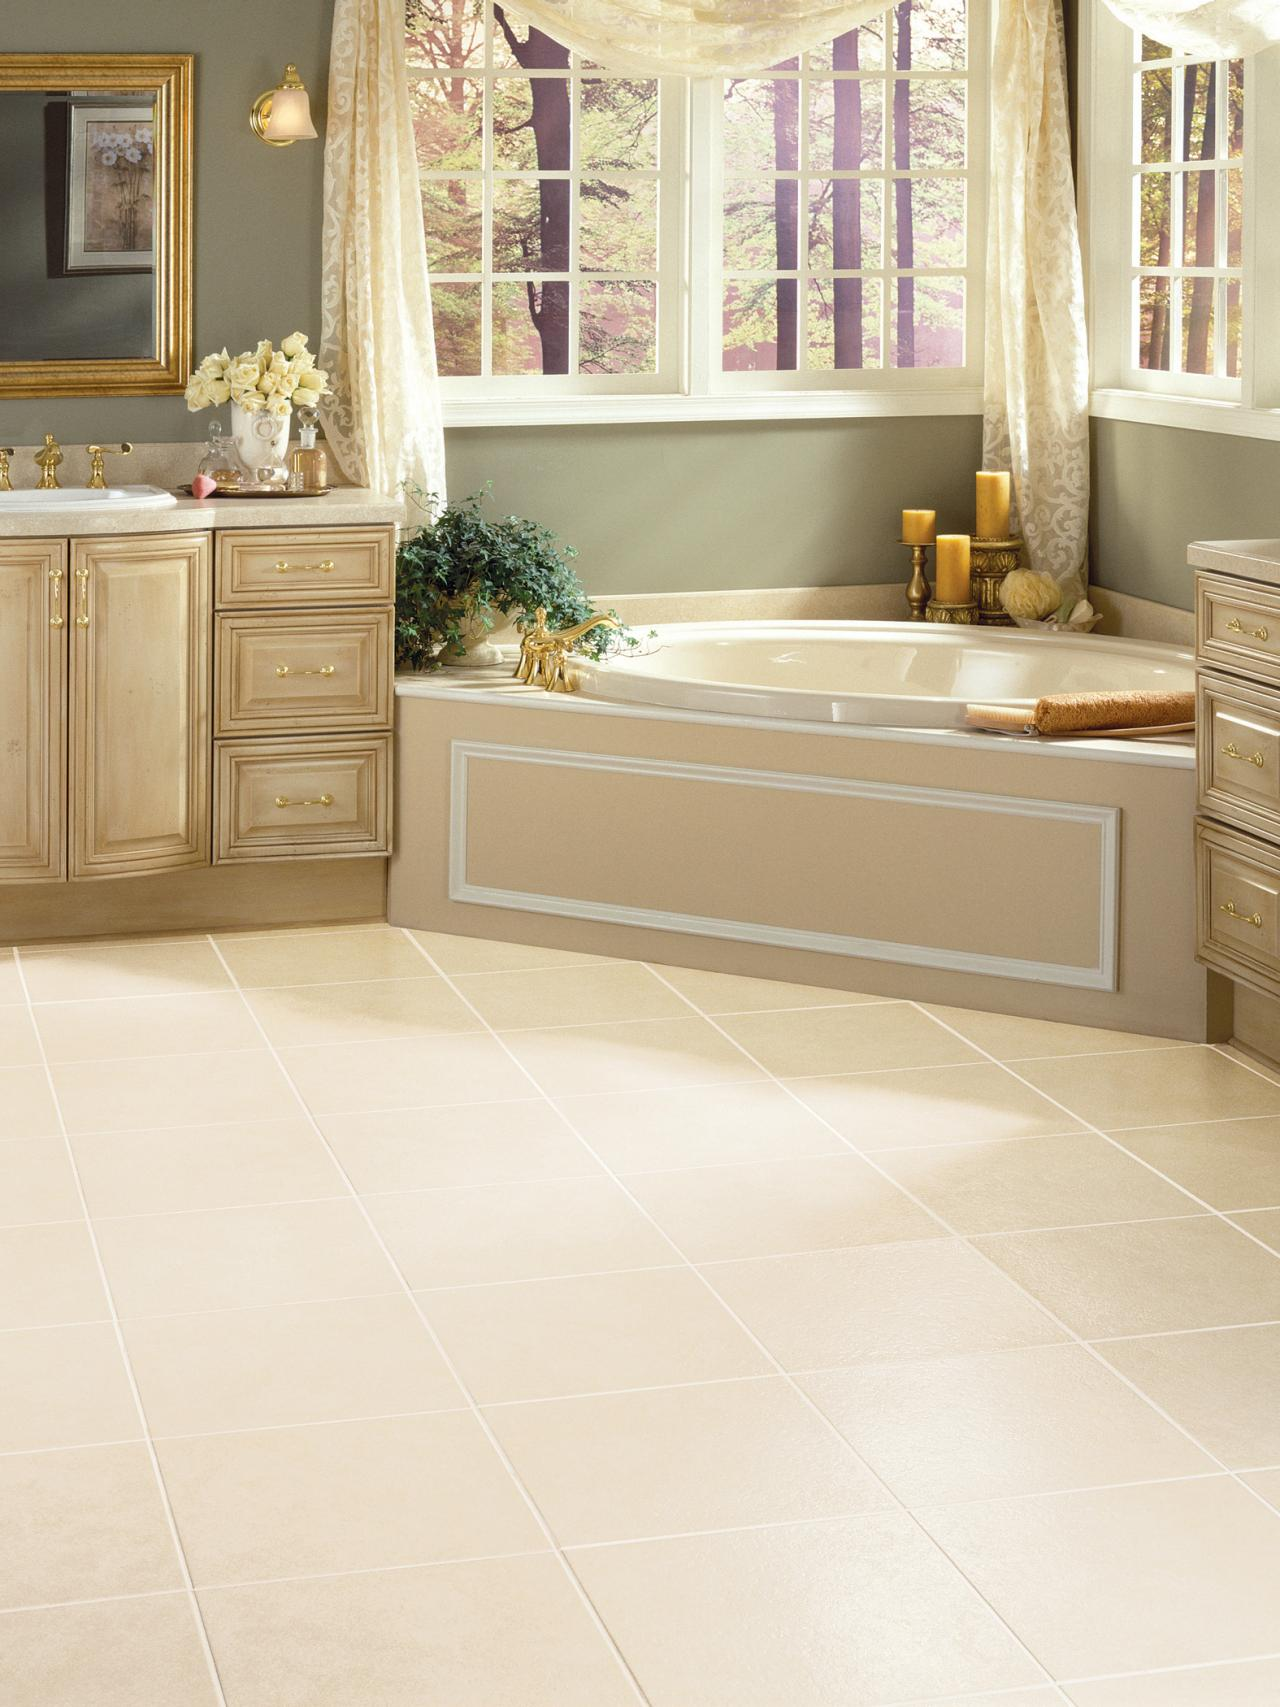 Awesome Vinyl Bathroom Floors vinyl flooring bathroom